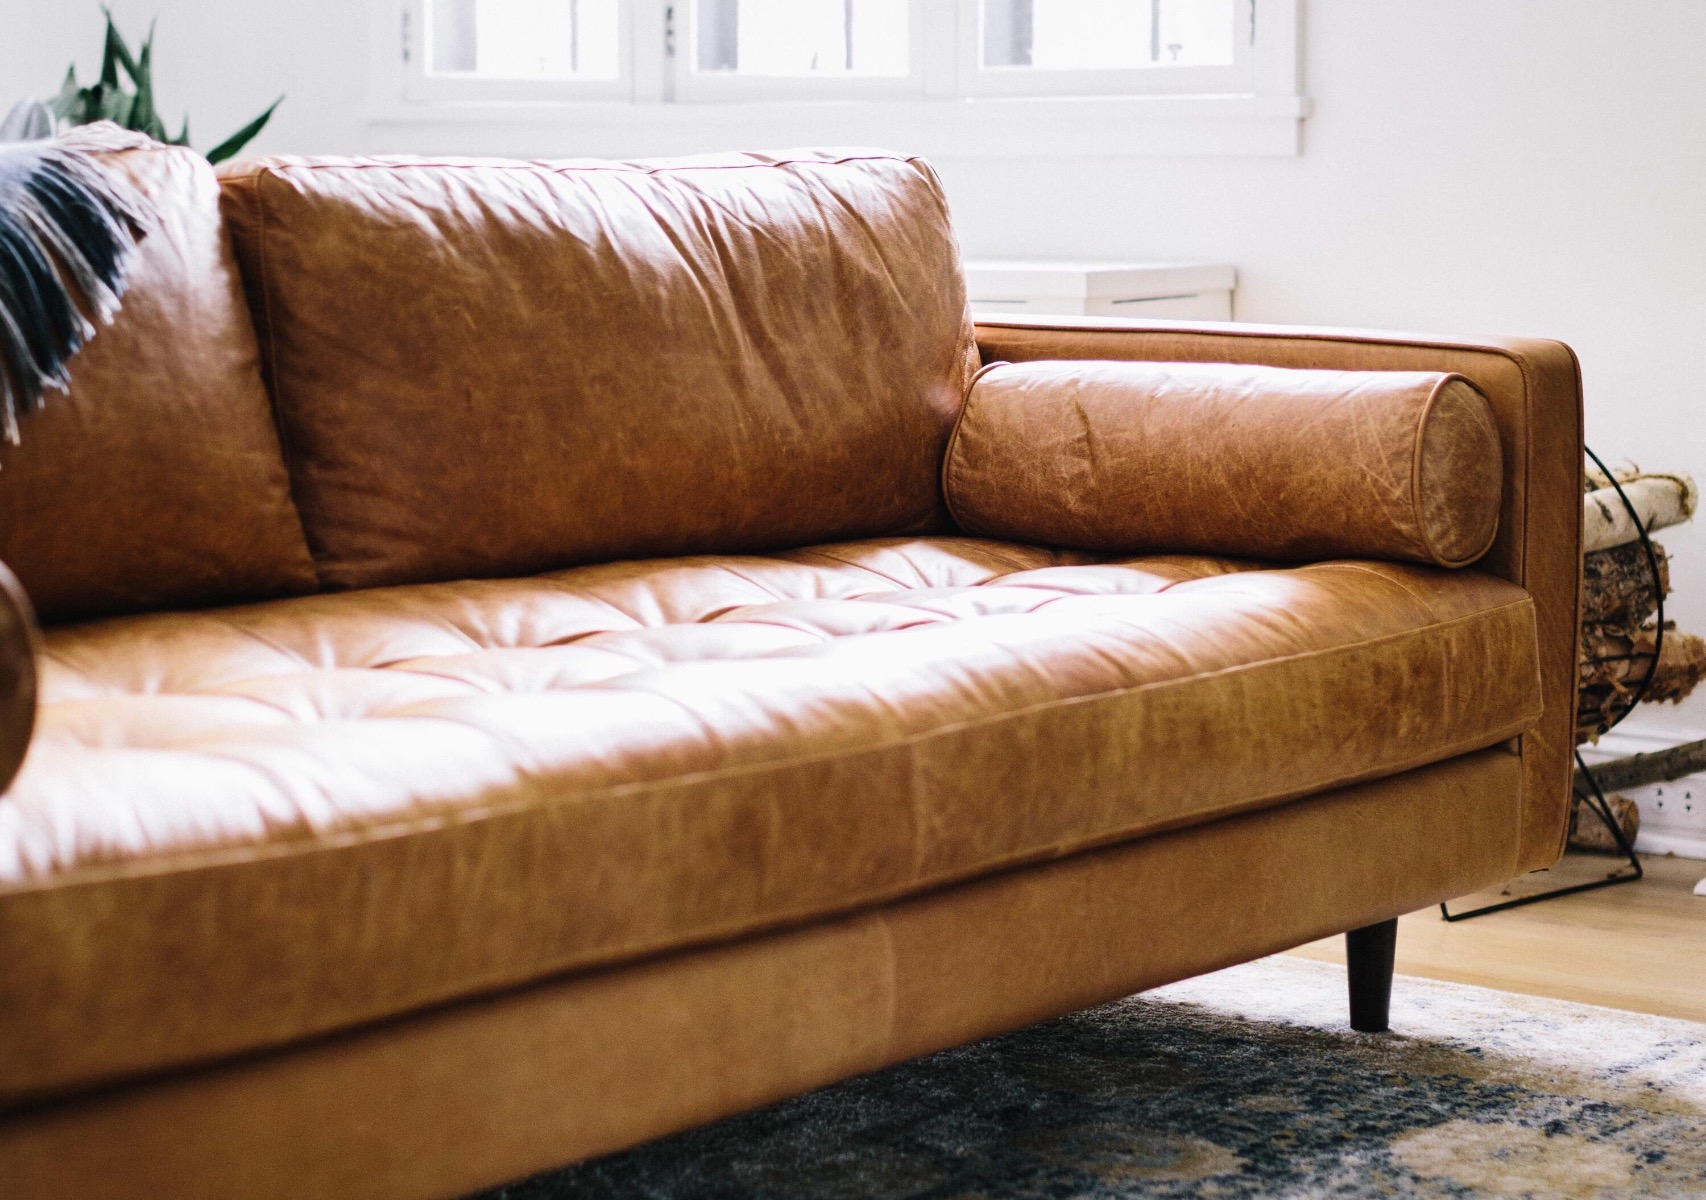 full grain leather sofa The Ultimate Leather Guide For Sofas full grain leather sofa